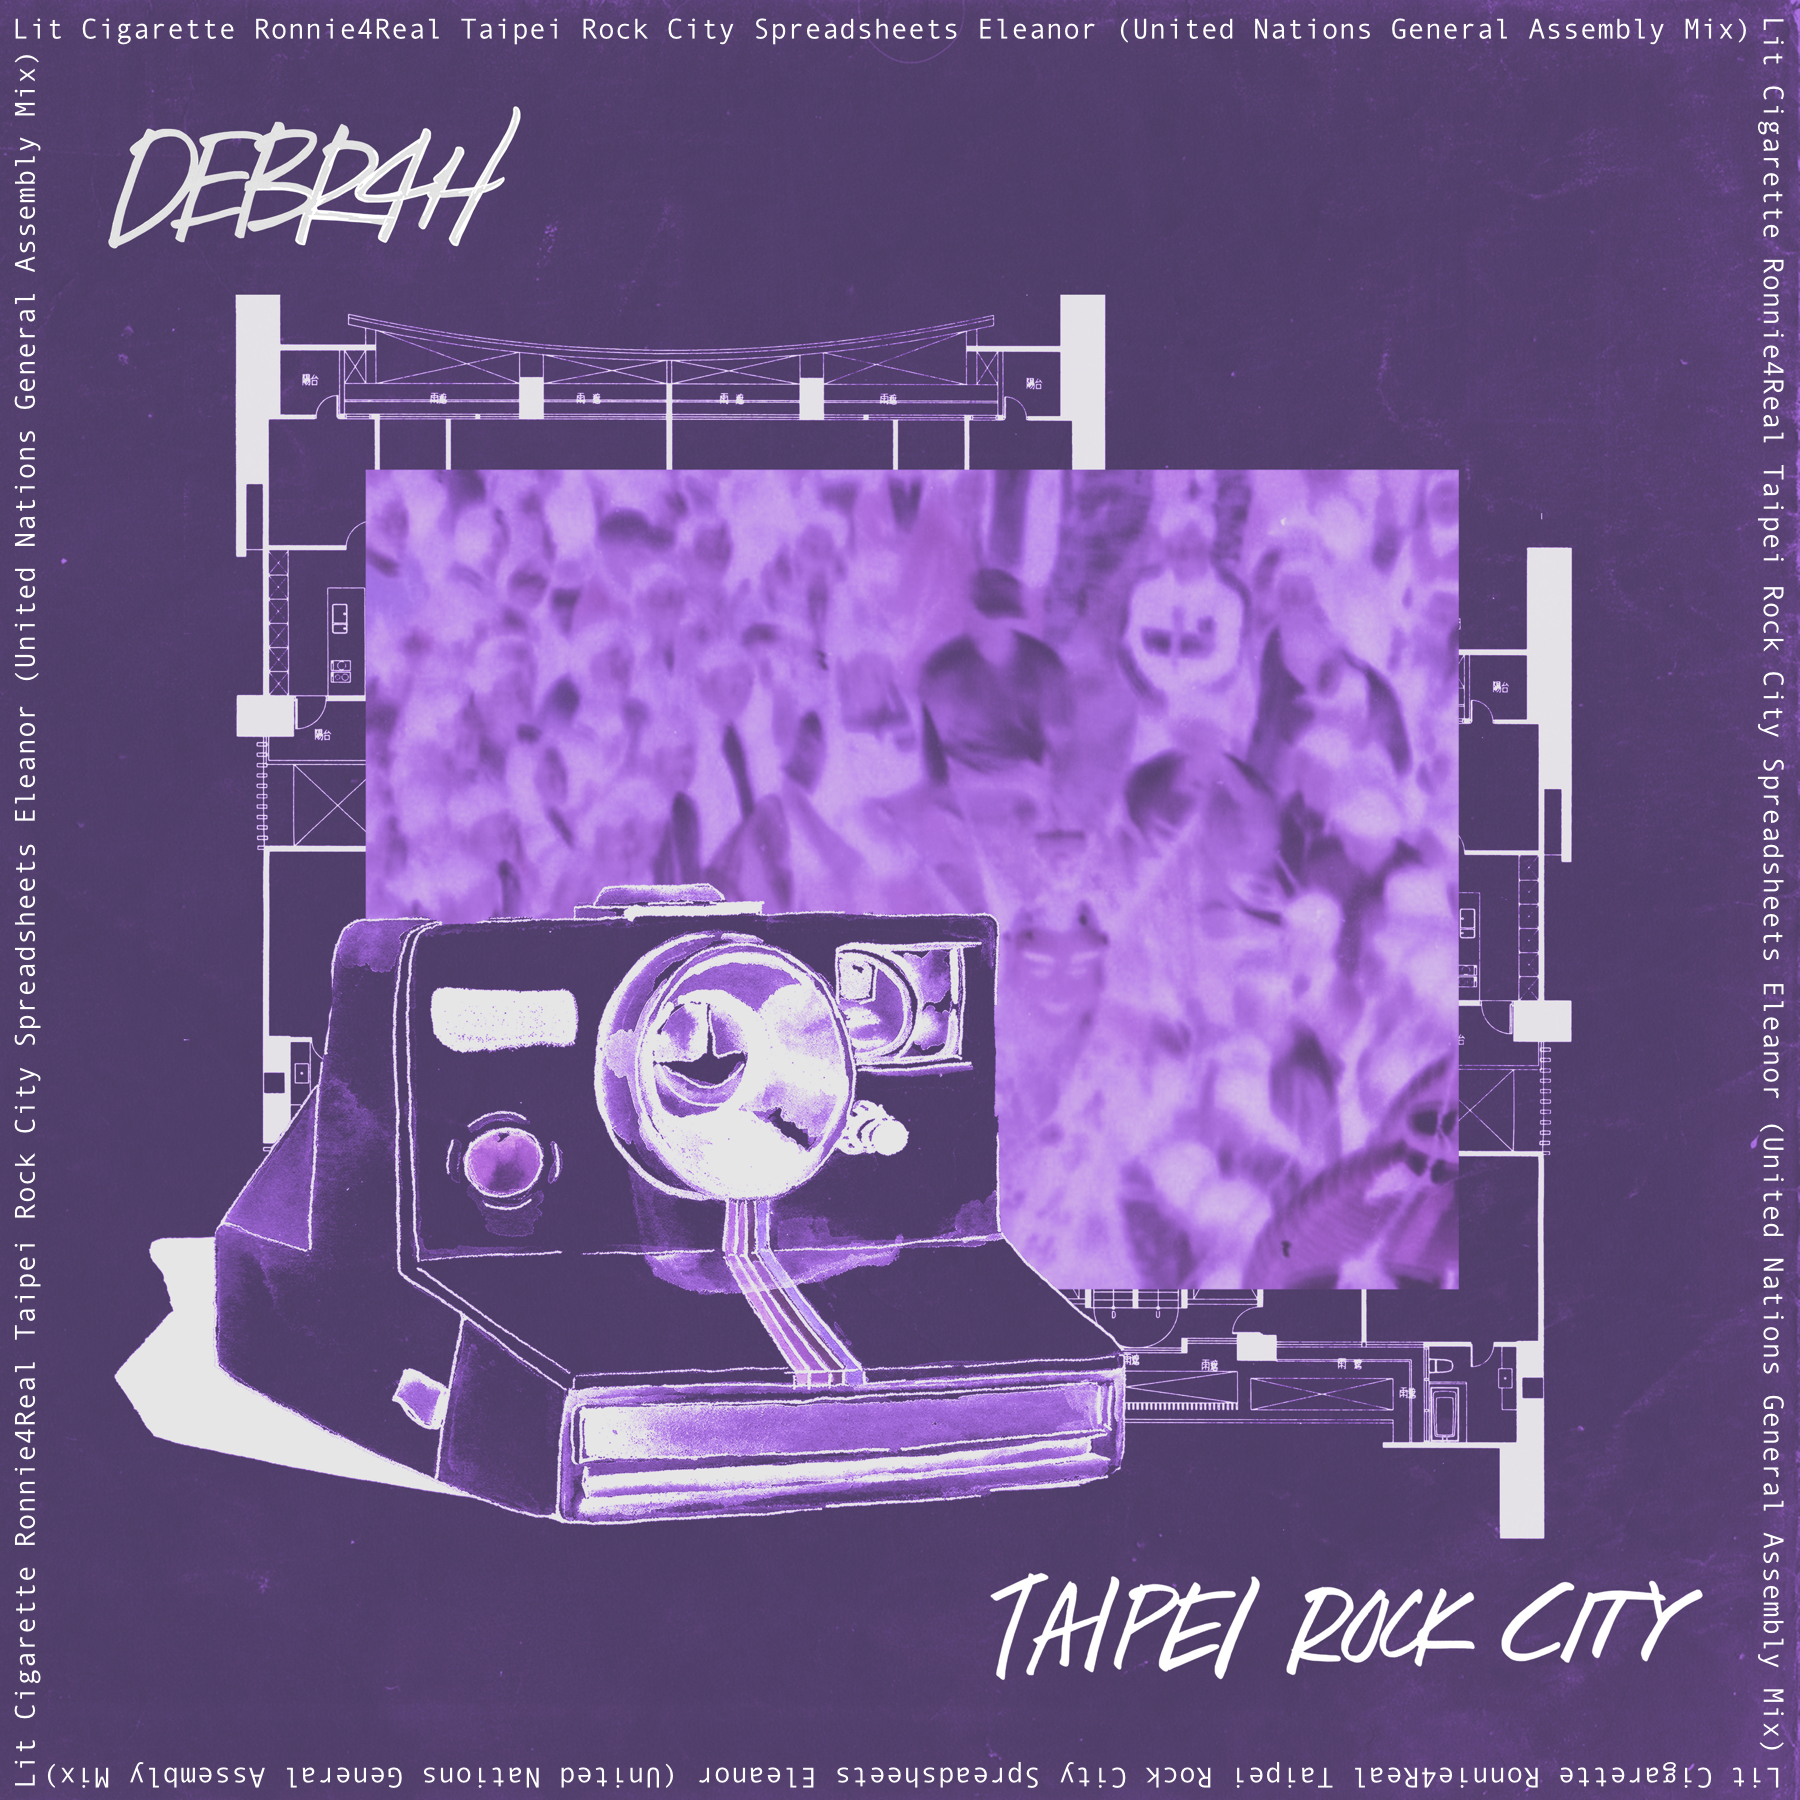 debr4h-cover copy.jpg